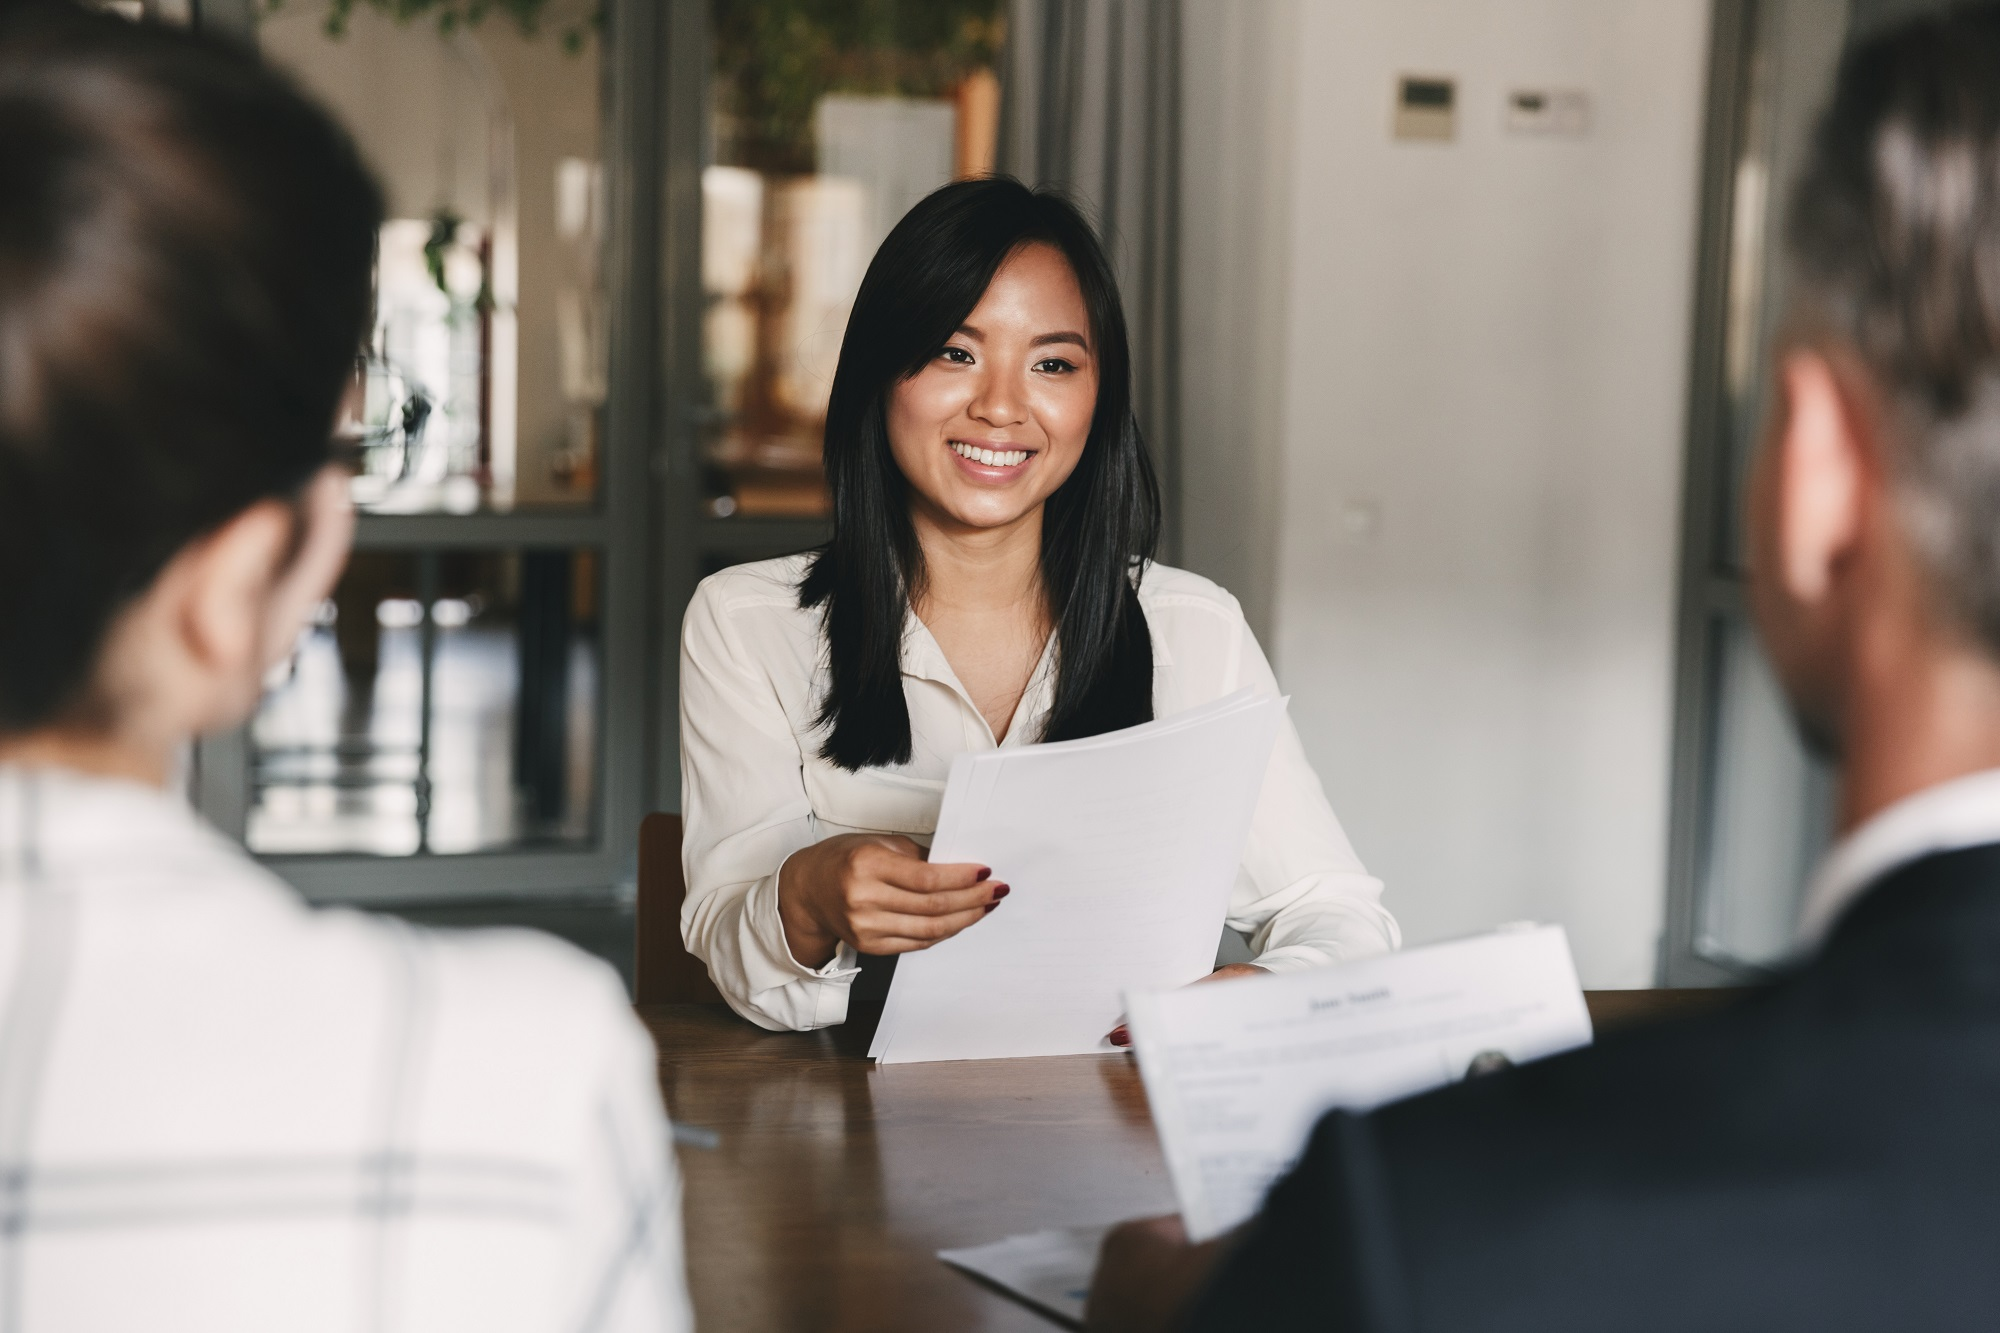 Woman interviewing team members to understand business needs.